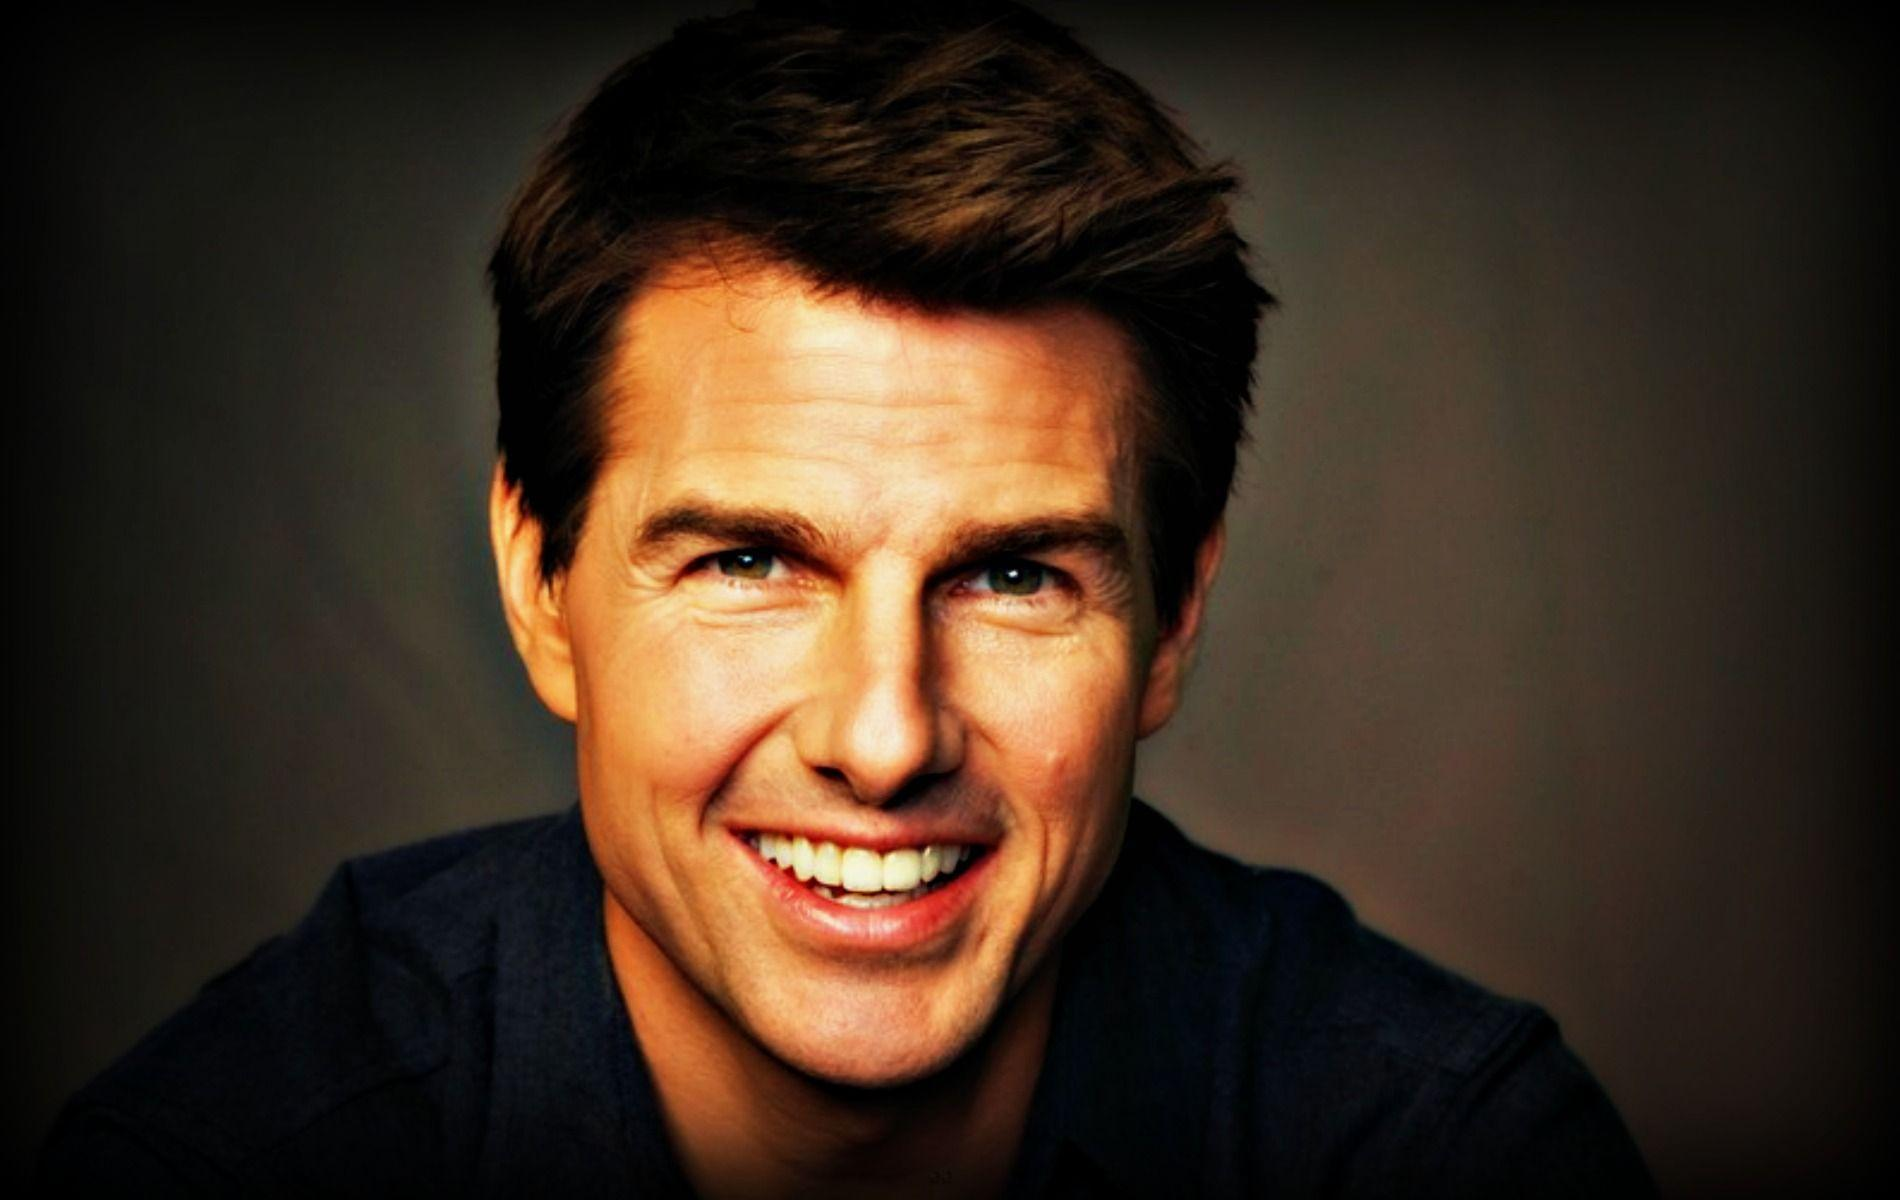 Tom Cruise Wallpapers 1900x1200